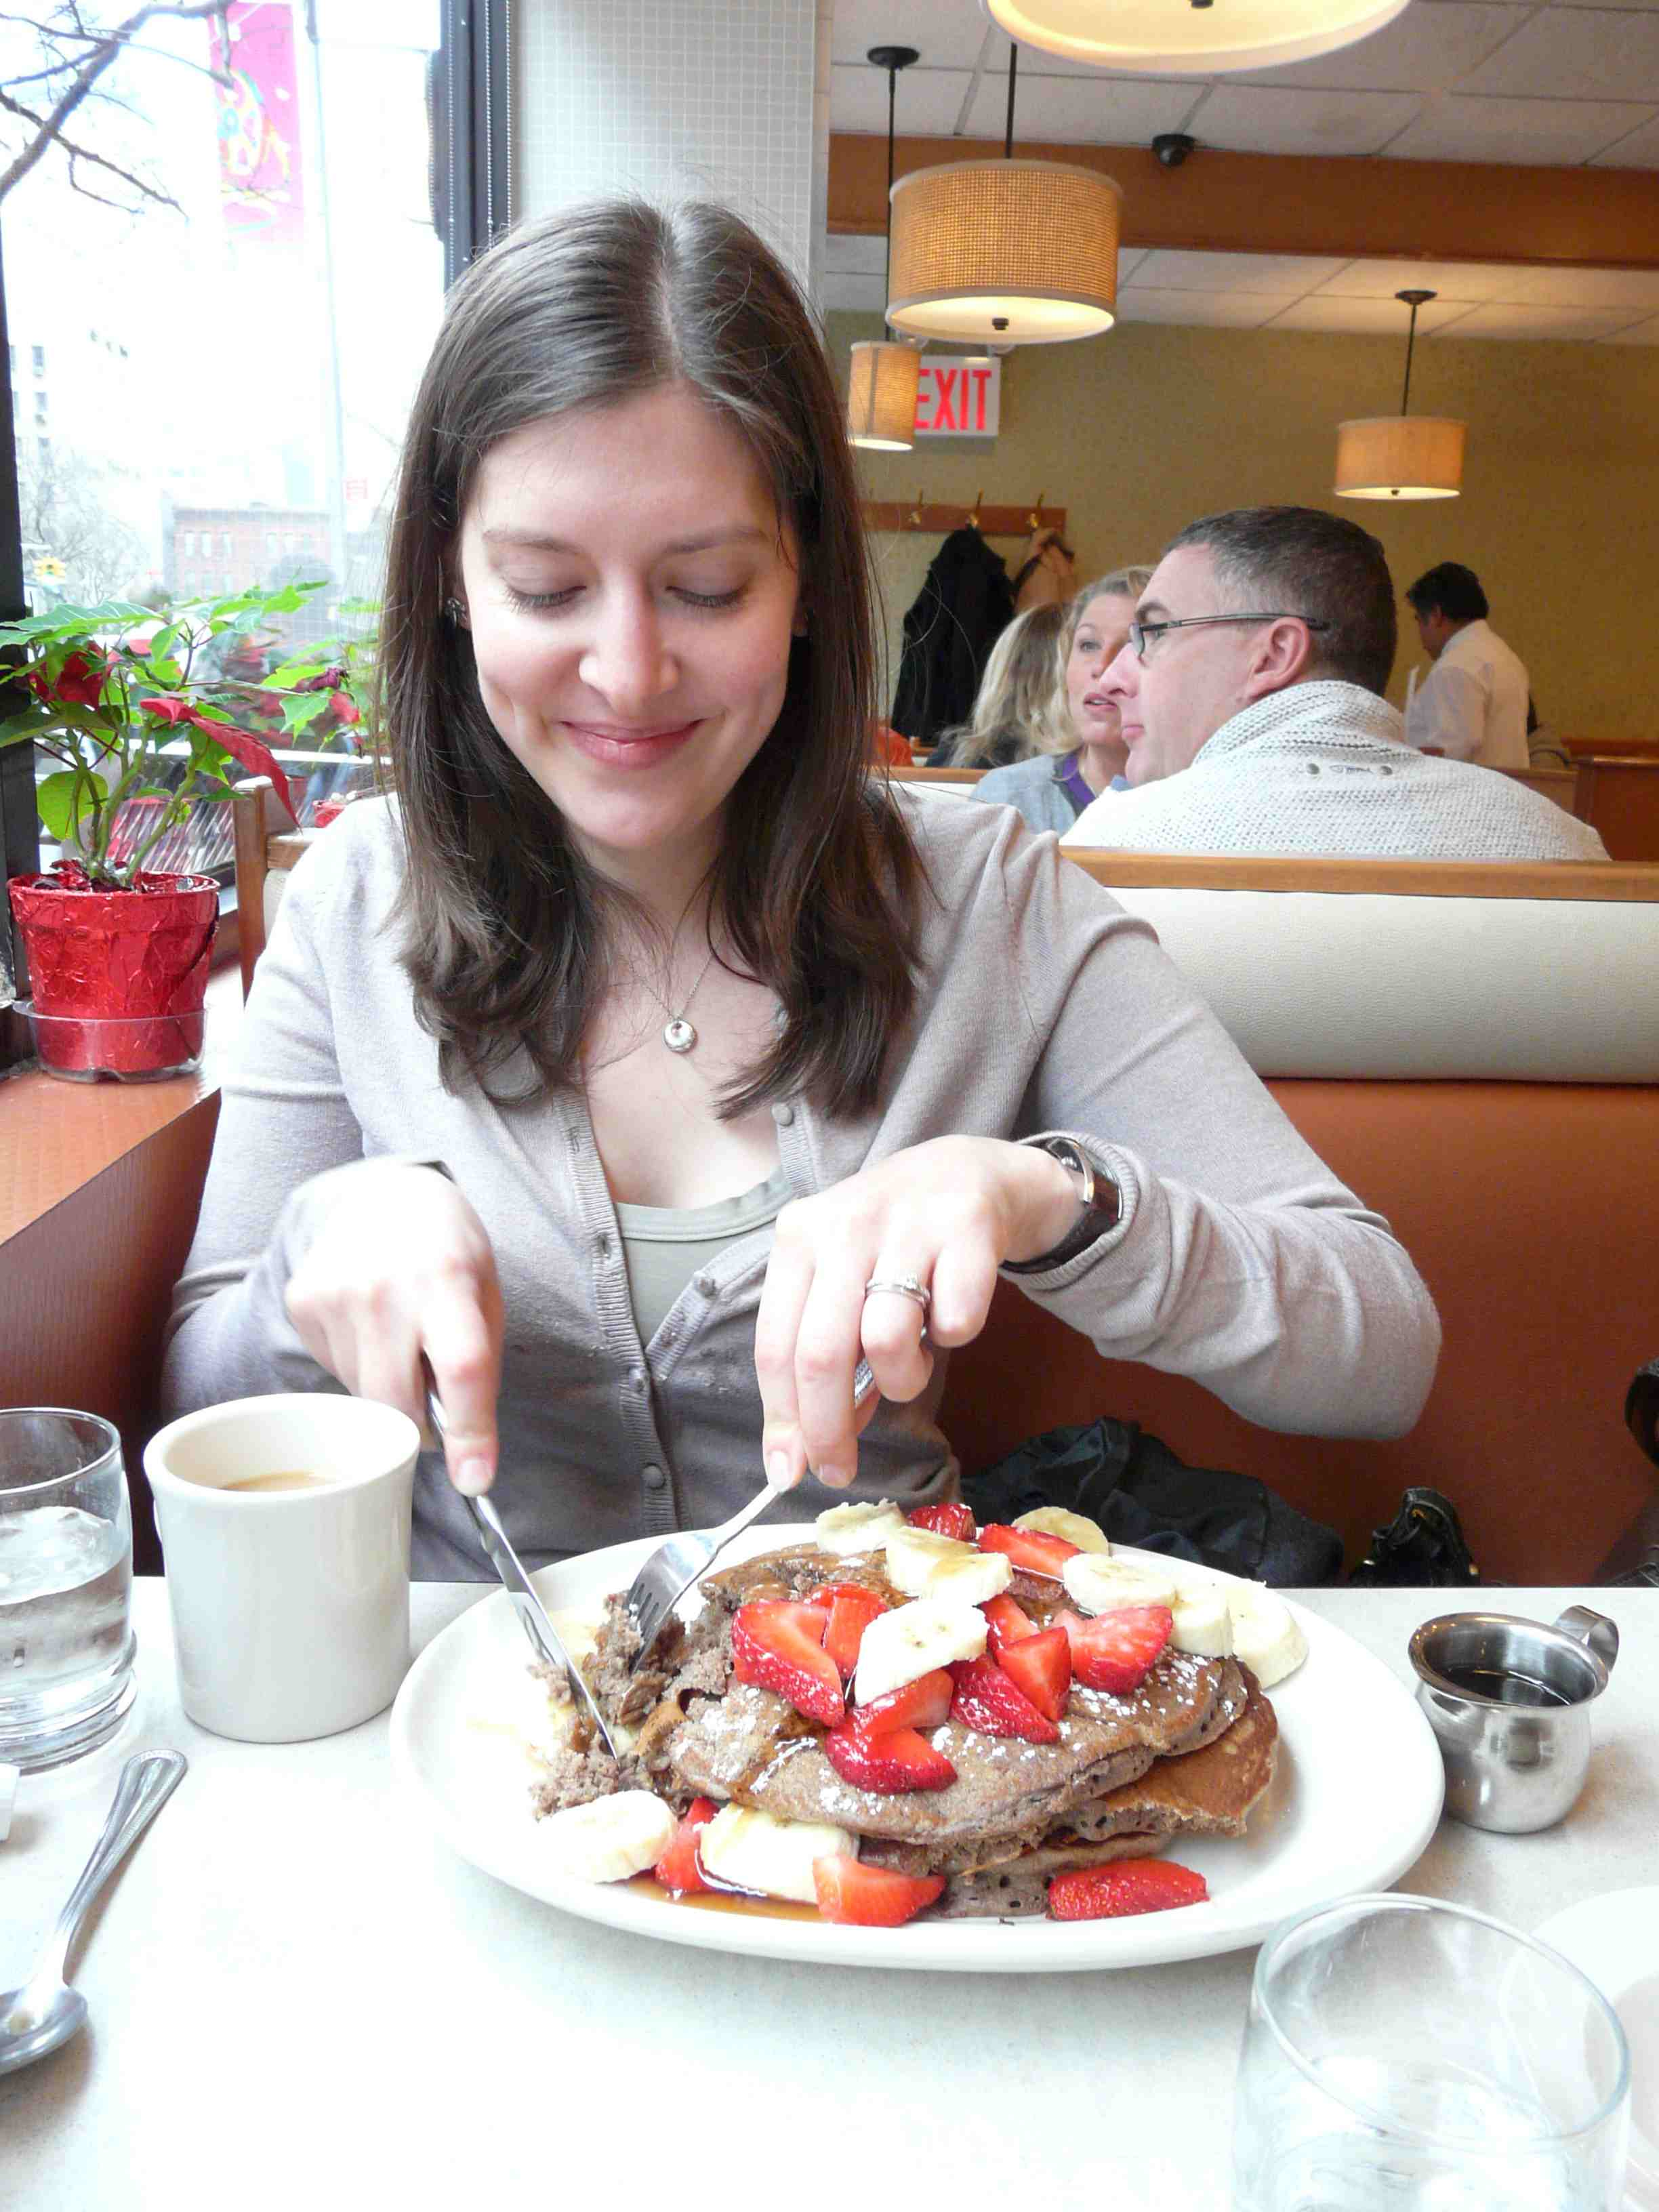 claire-eating-huge-pile-on-pancakes.jpg